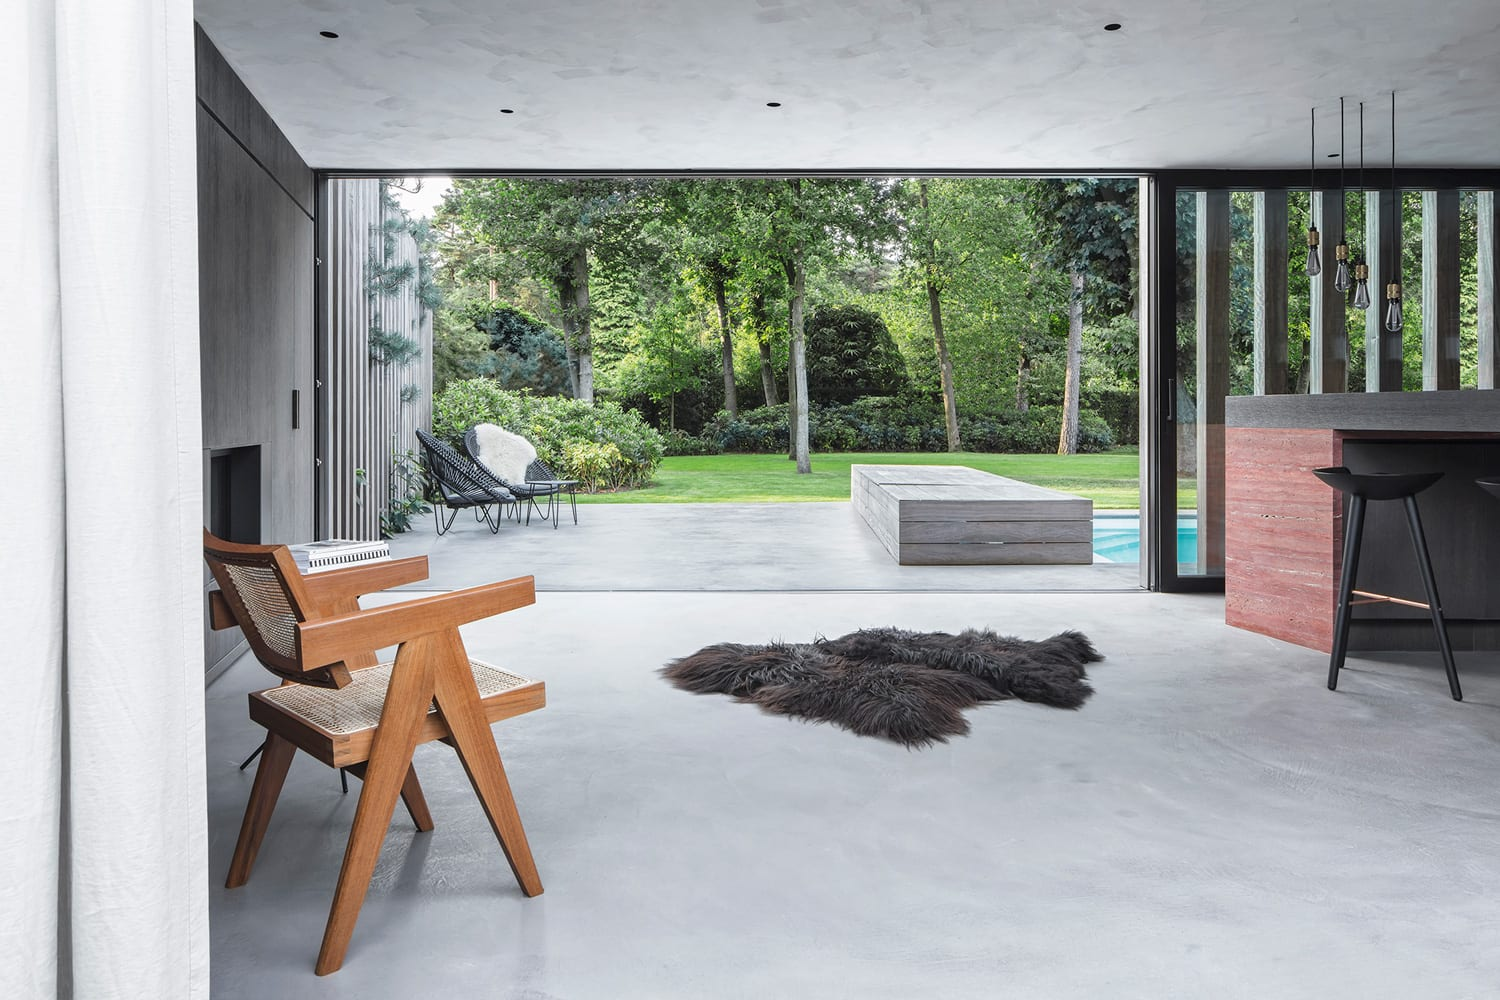 Poolhouse S W By Arjaan De Feyter | Yellowtrace